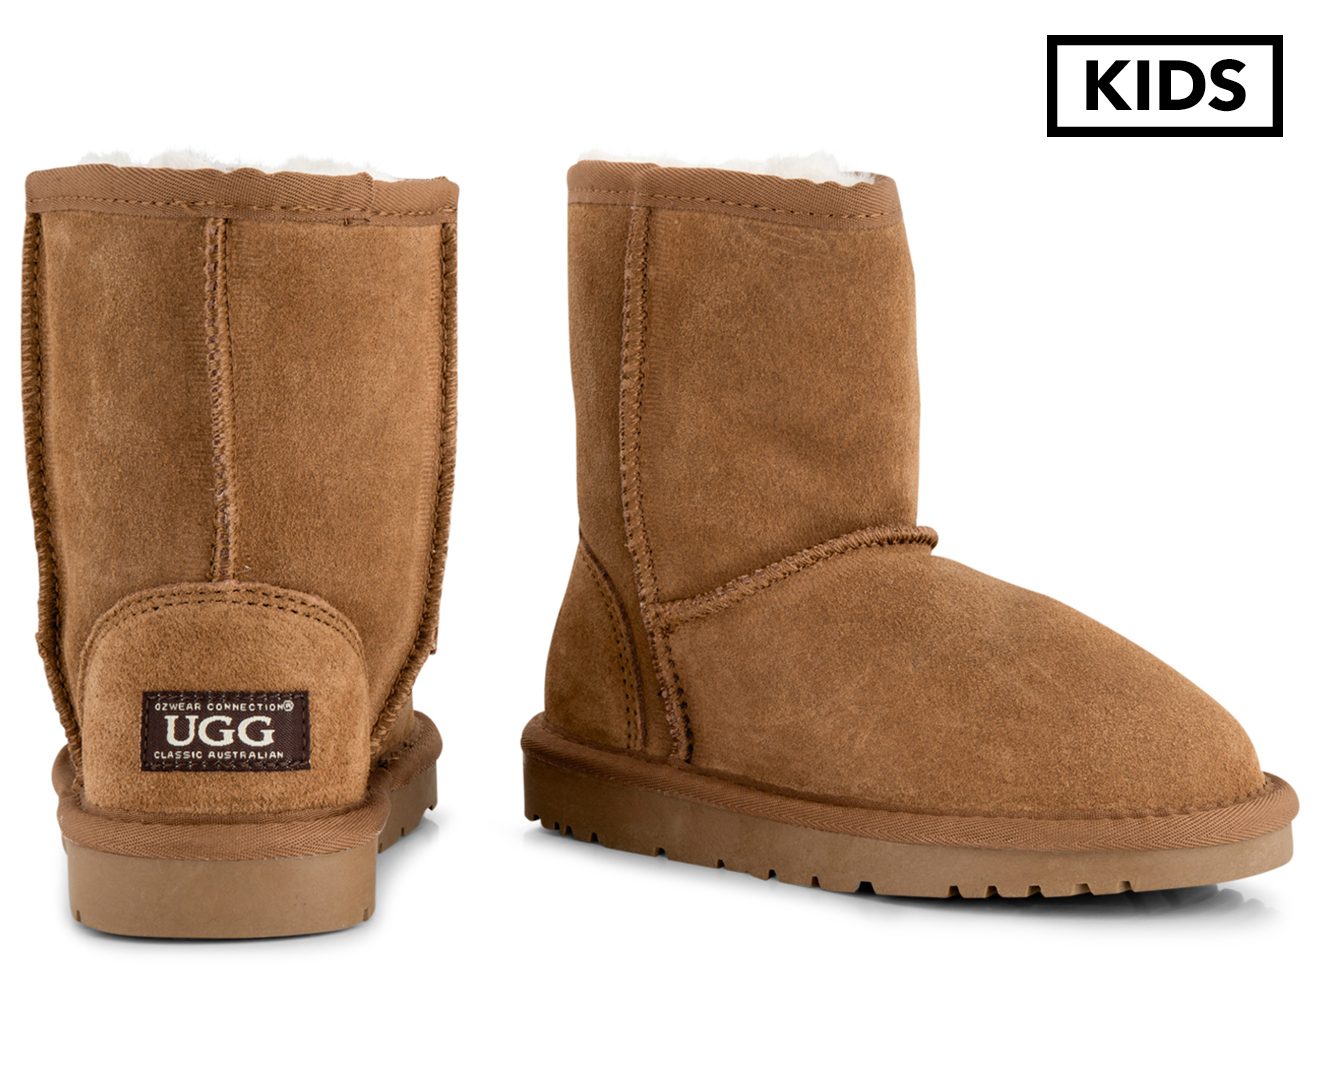 5d97c01b7f6 Details about OZWEAR Connection Kids' Ugg Boots - Chestnut